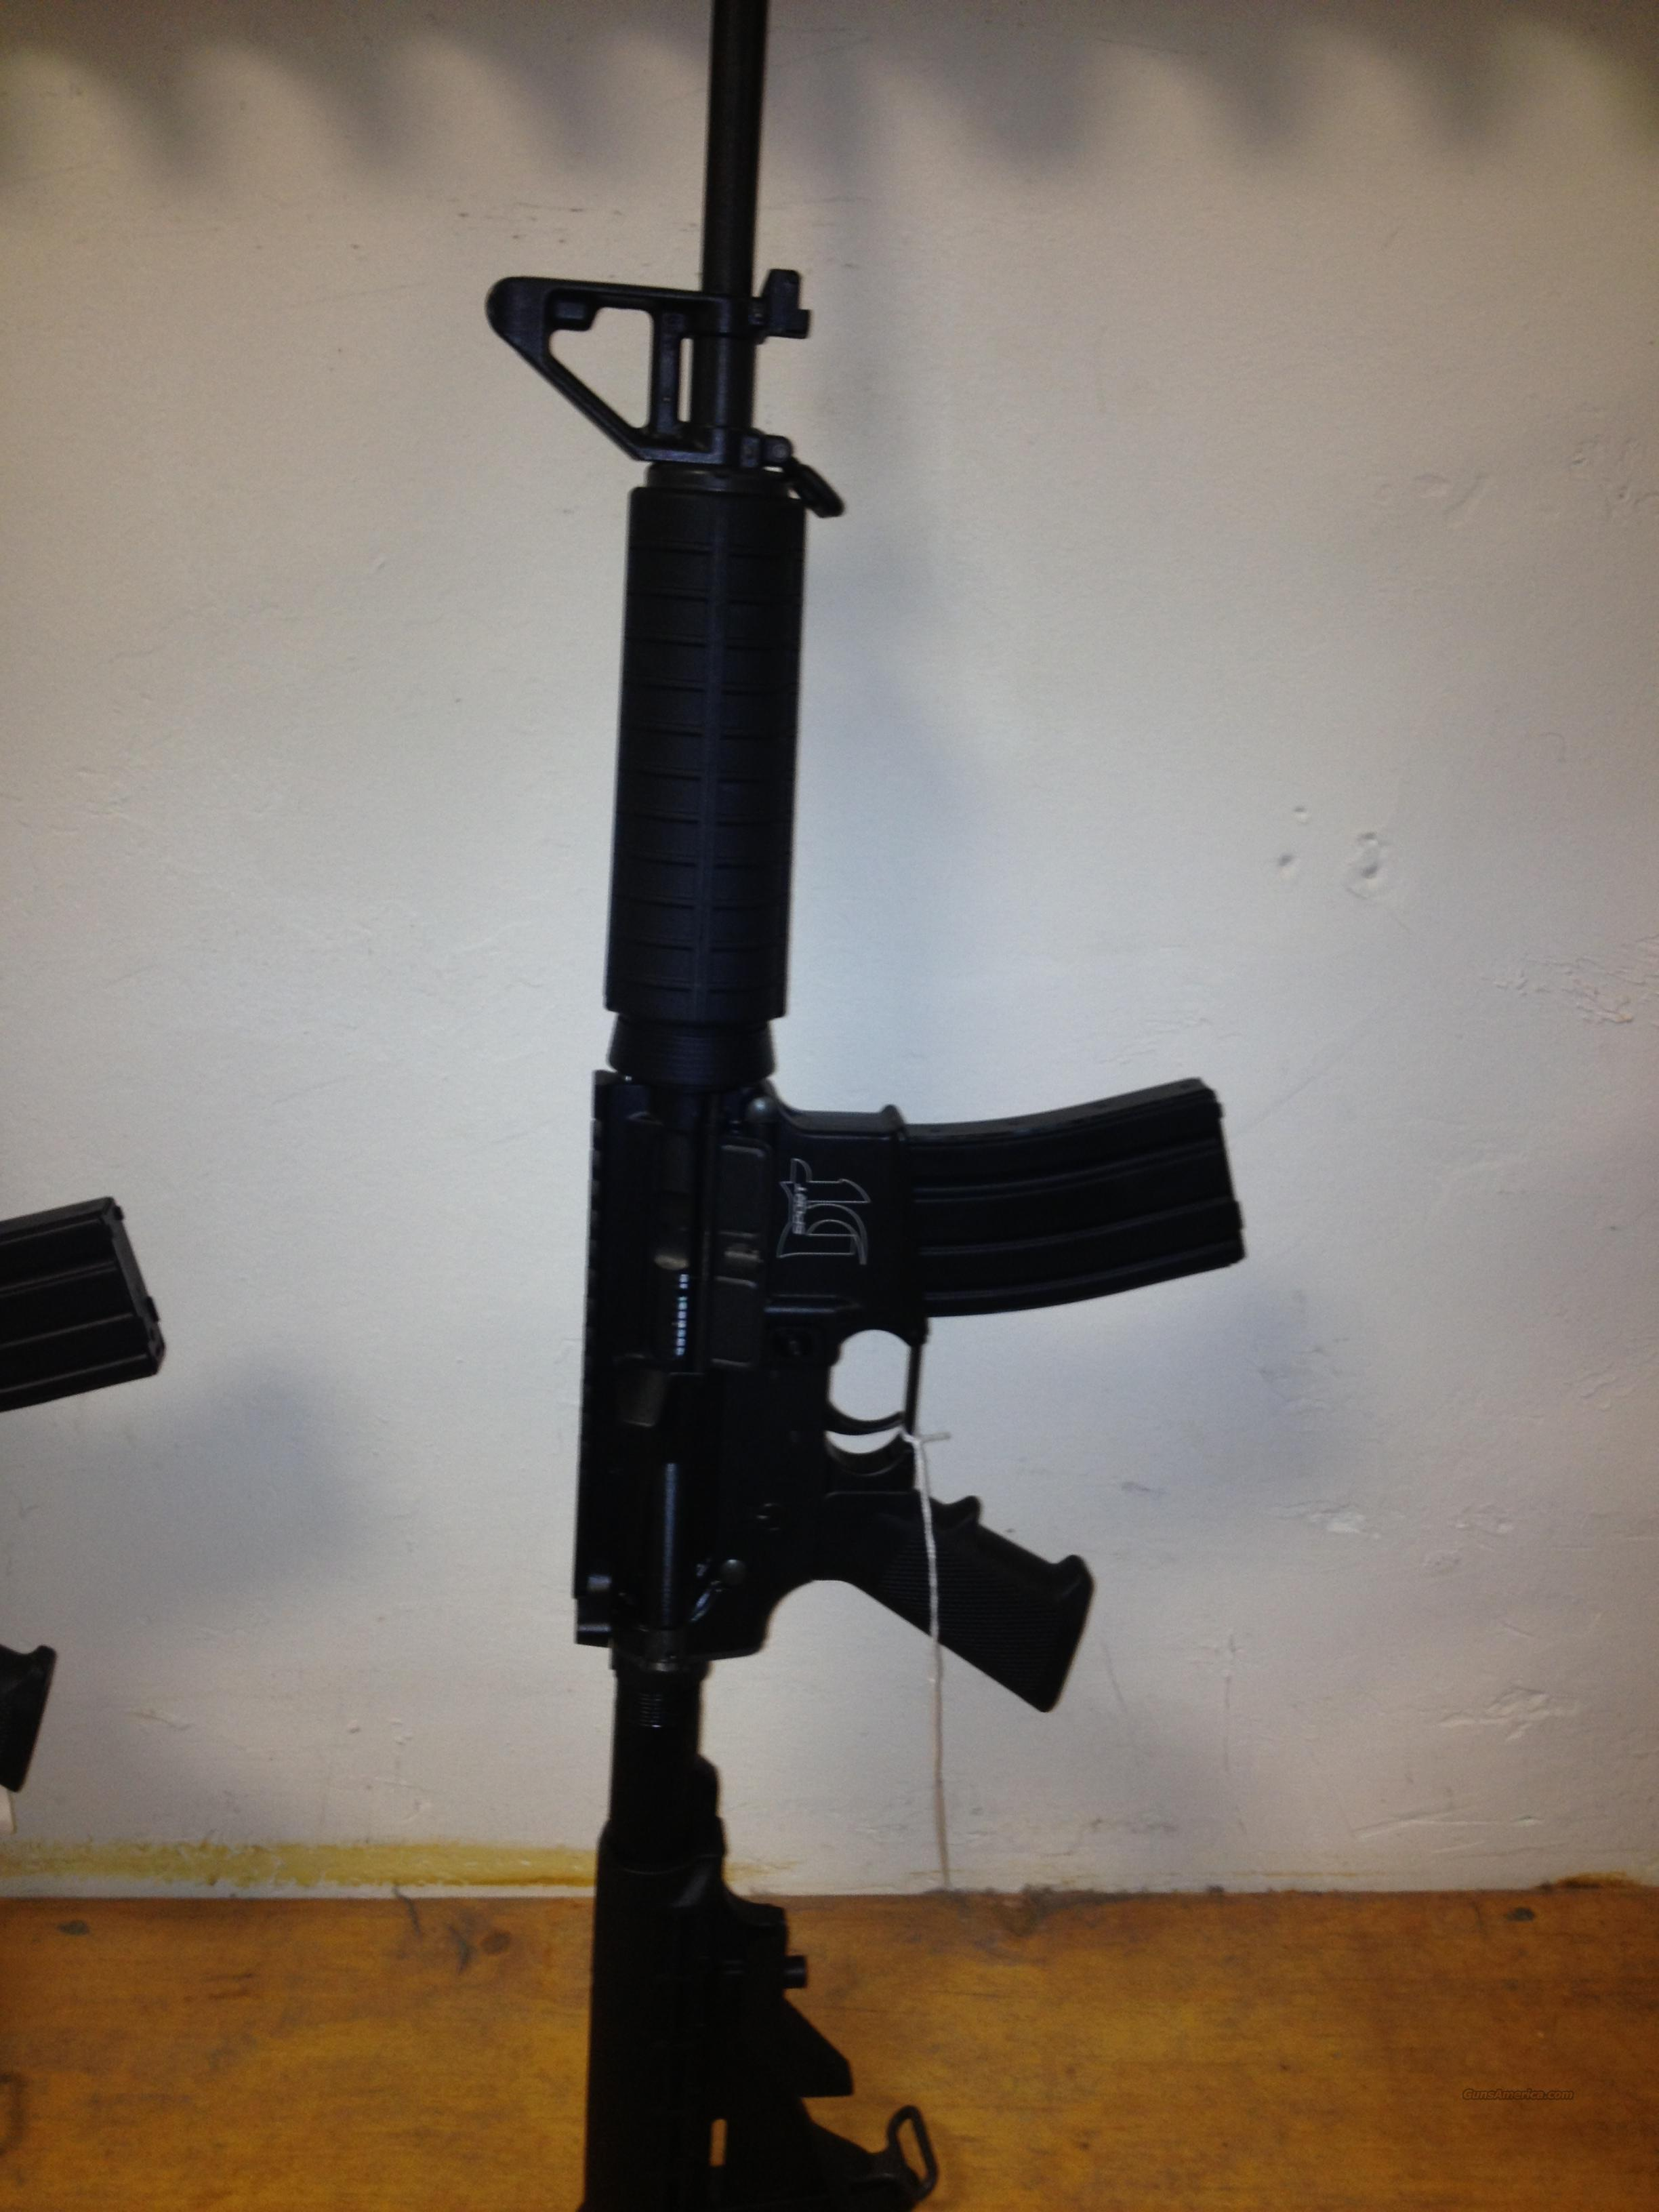 Delton sport  Guns > Rifles > AR-15 Rifles - Small Manufacturers > Complete Rifle